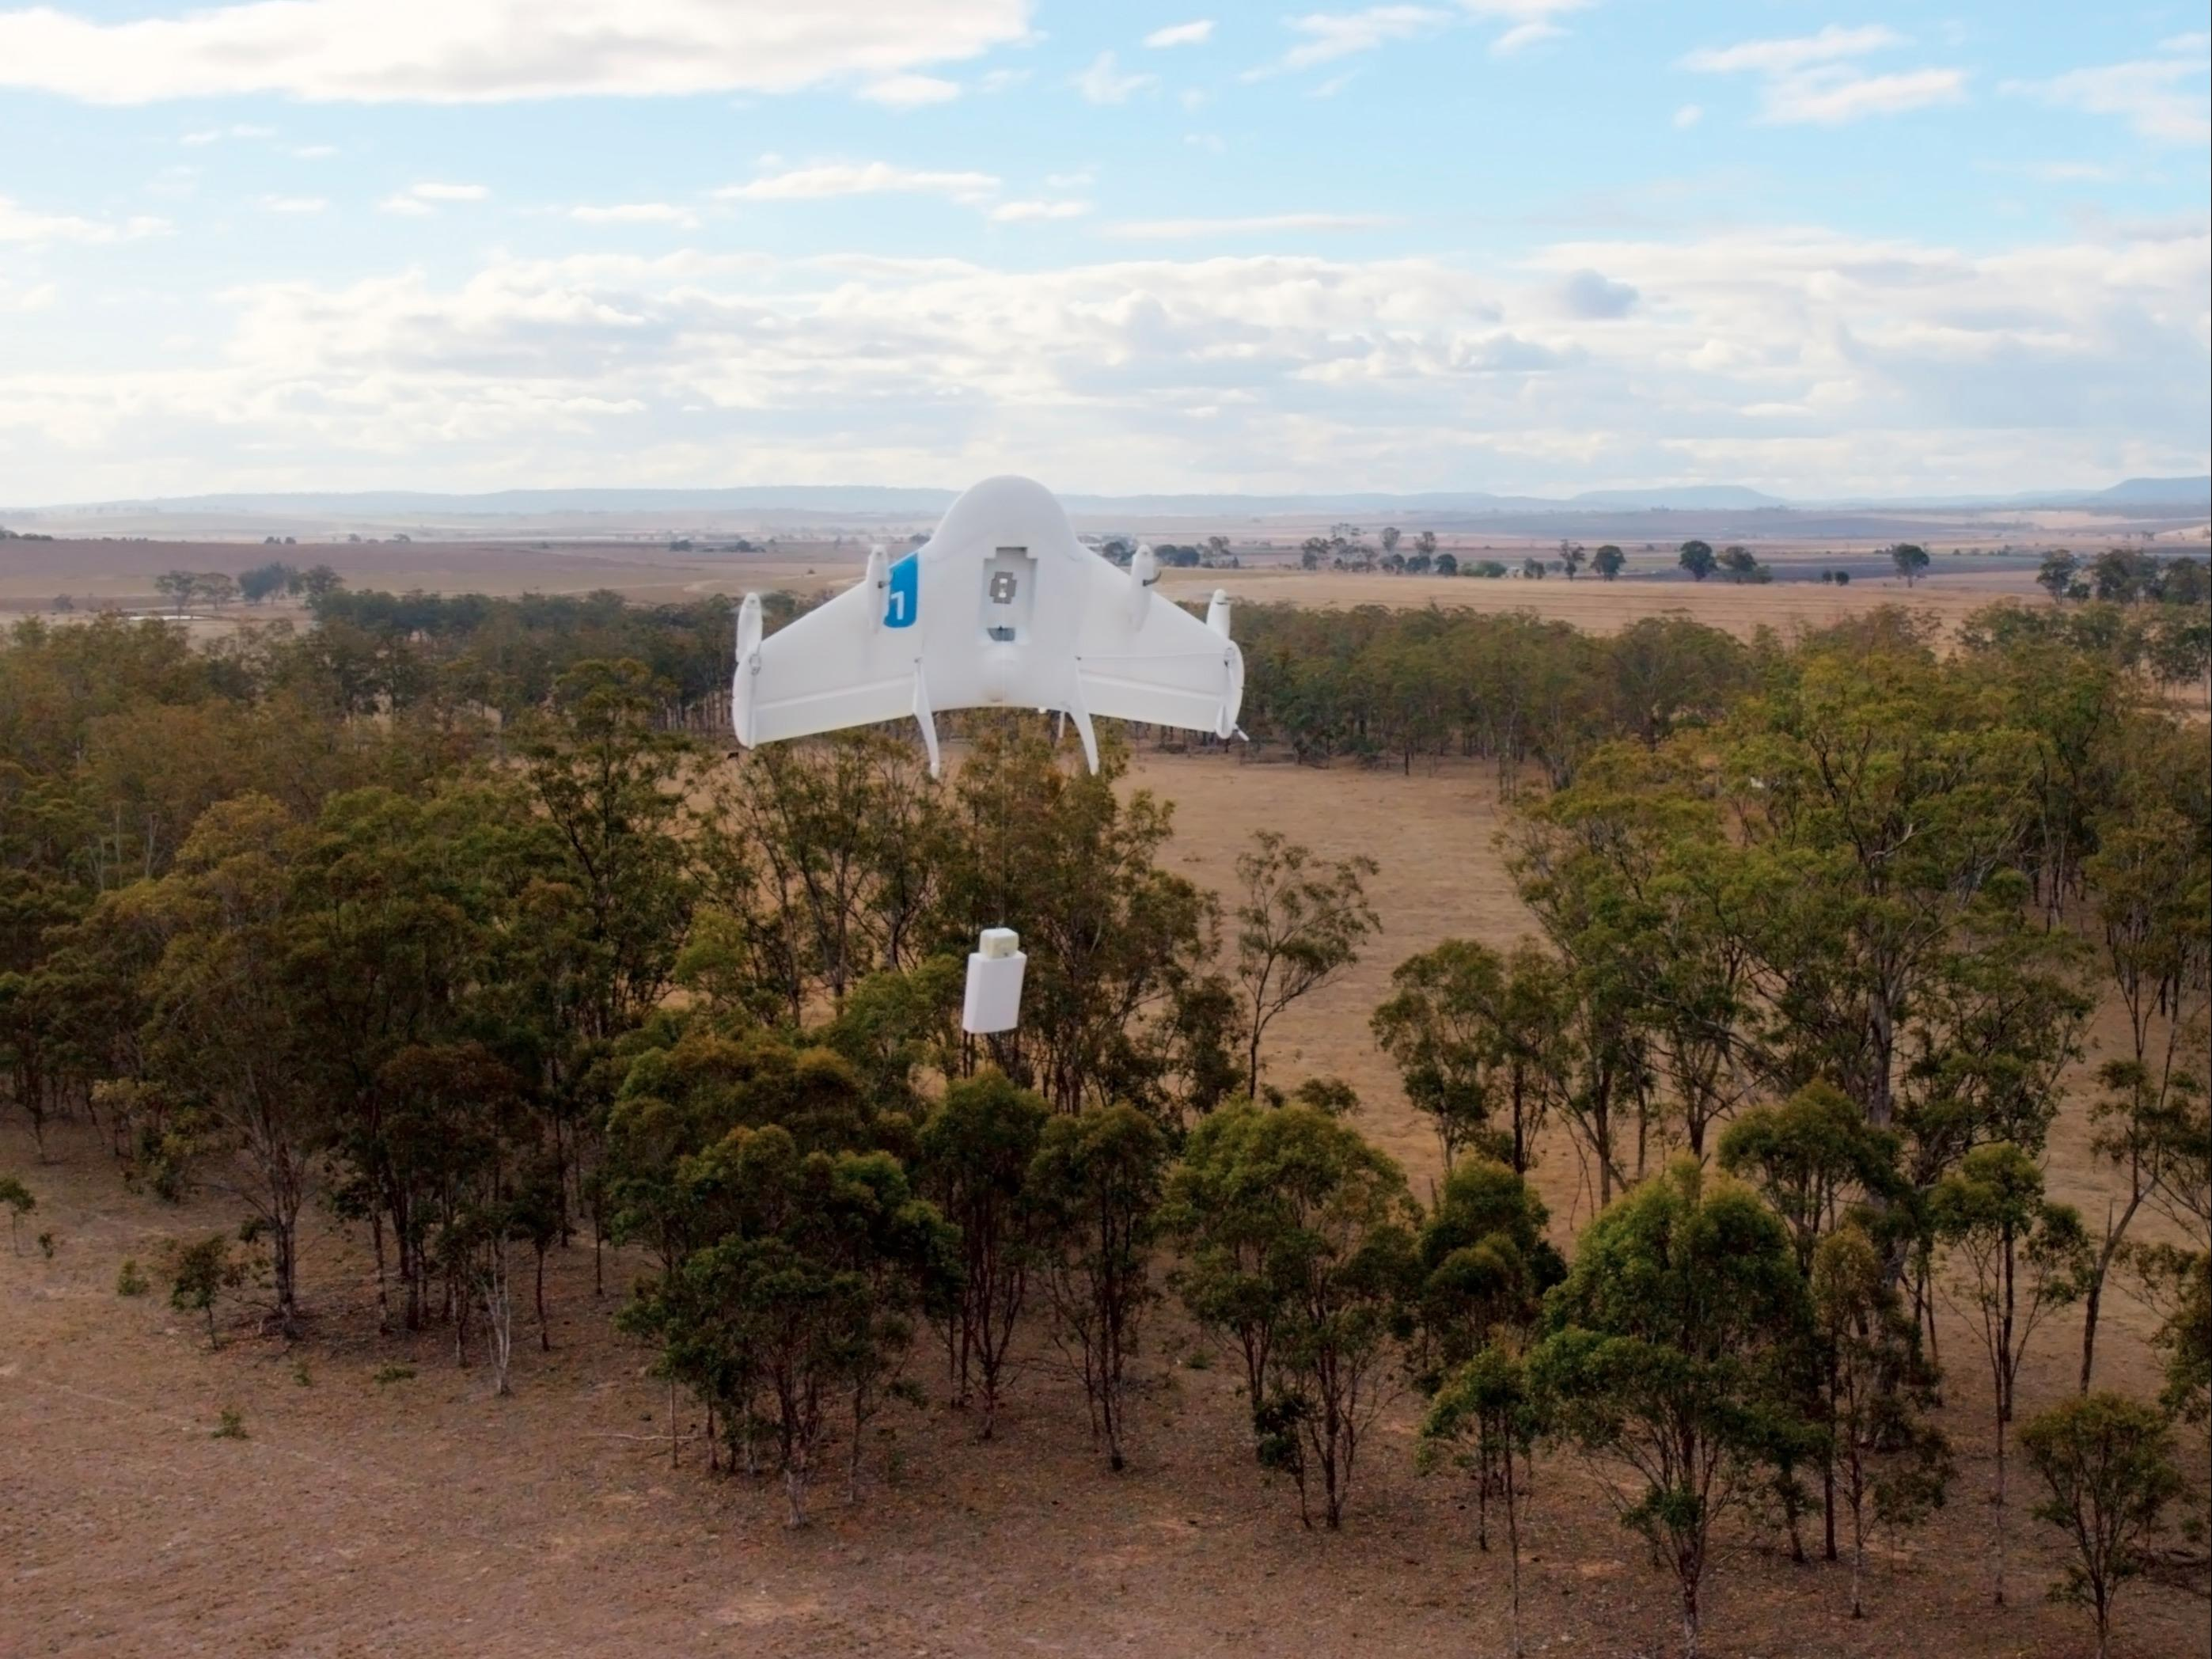 Google just registered two new delivery drones to test in the US